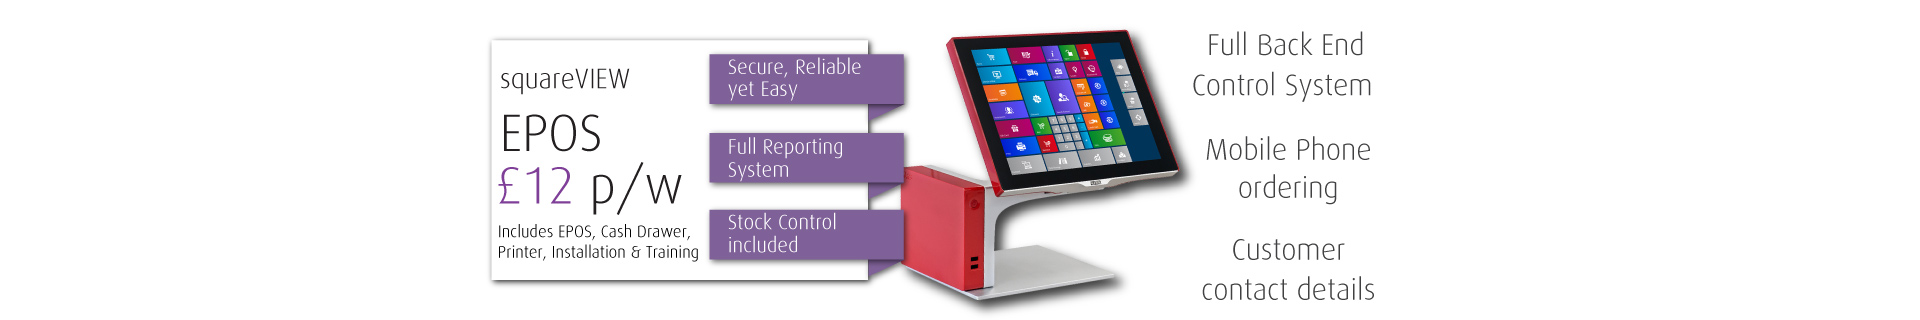 EPOS Systems for Take Away and restaurants